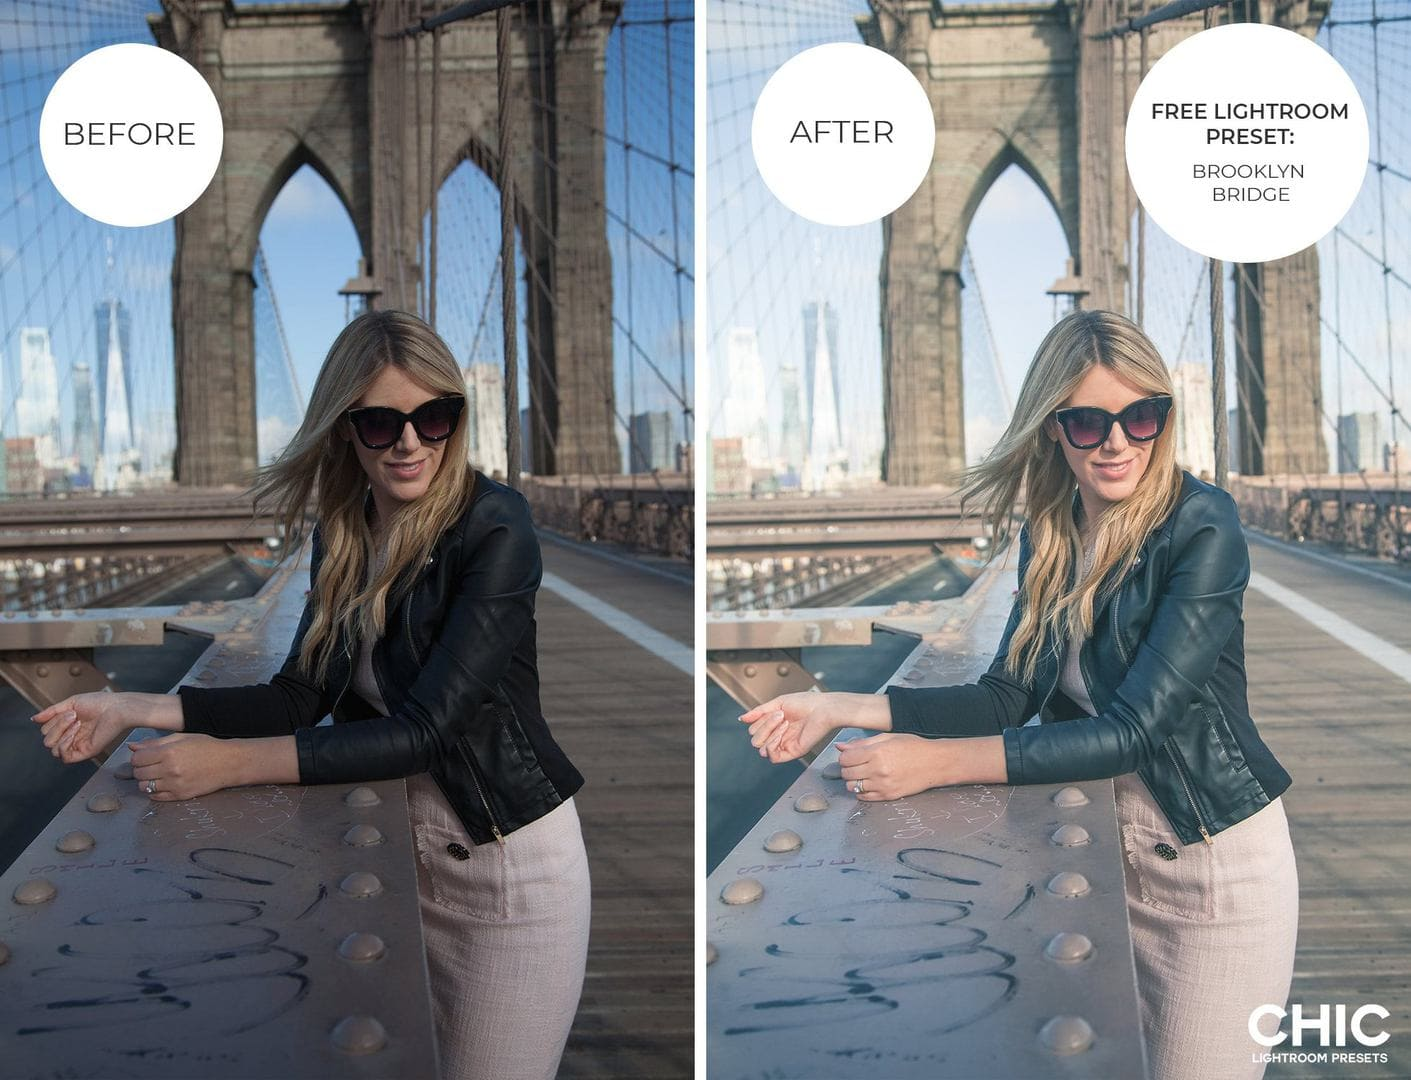 Free Lightroom Preset Brooklyn Bridge